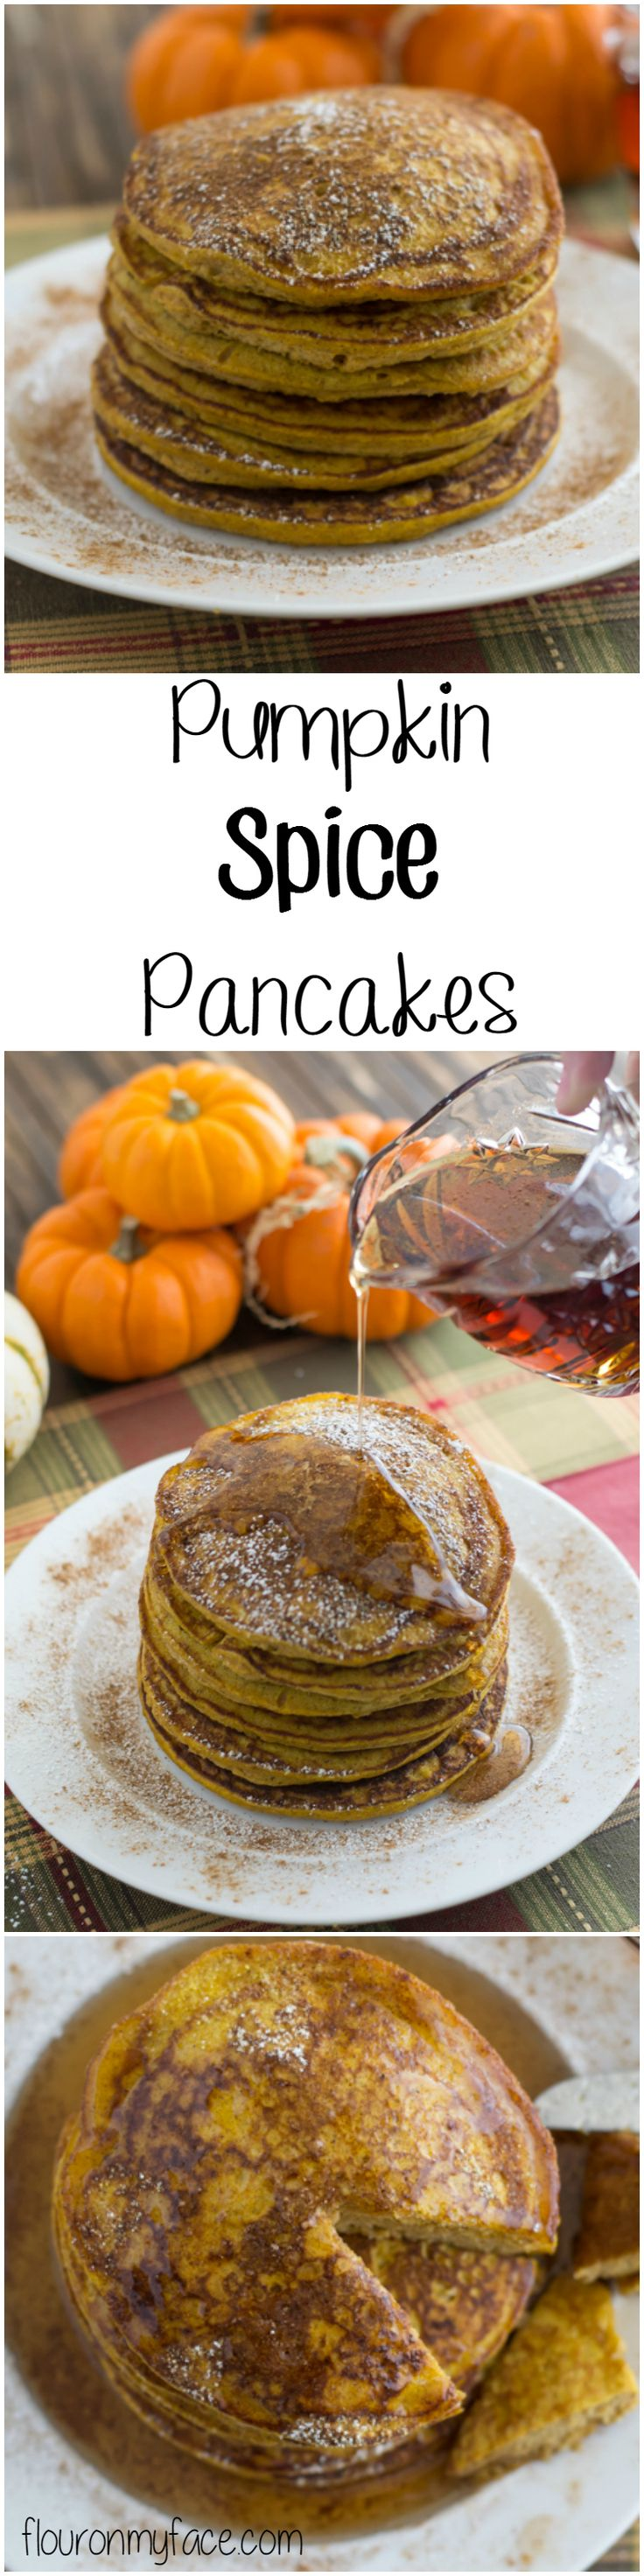 Enjoy your favorite fall flavor with these Pumpkin Spice Pancakes with Cinnamon Syrup via flouronmyface.com